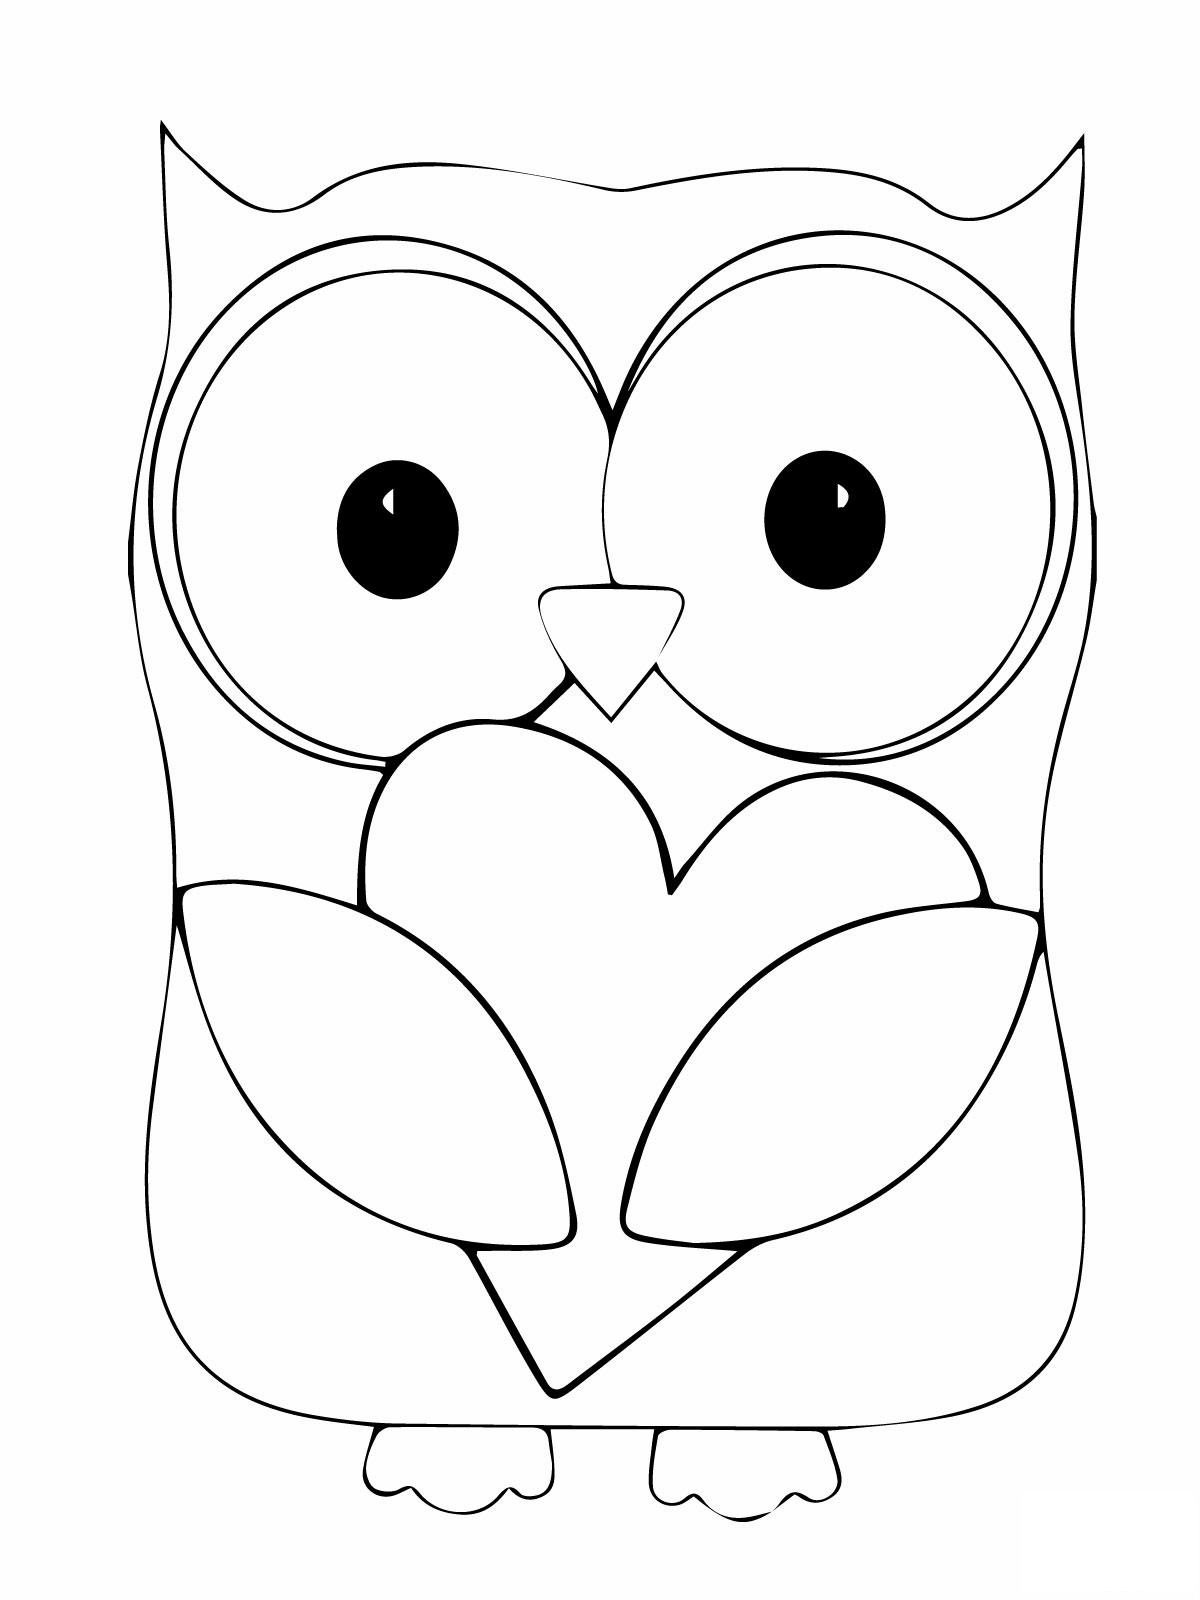 owl coloring pages free printable free printable owl coloring pages for kids owl coloring free pages printable